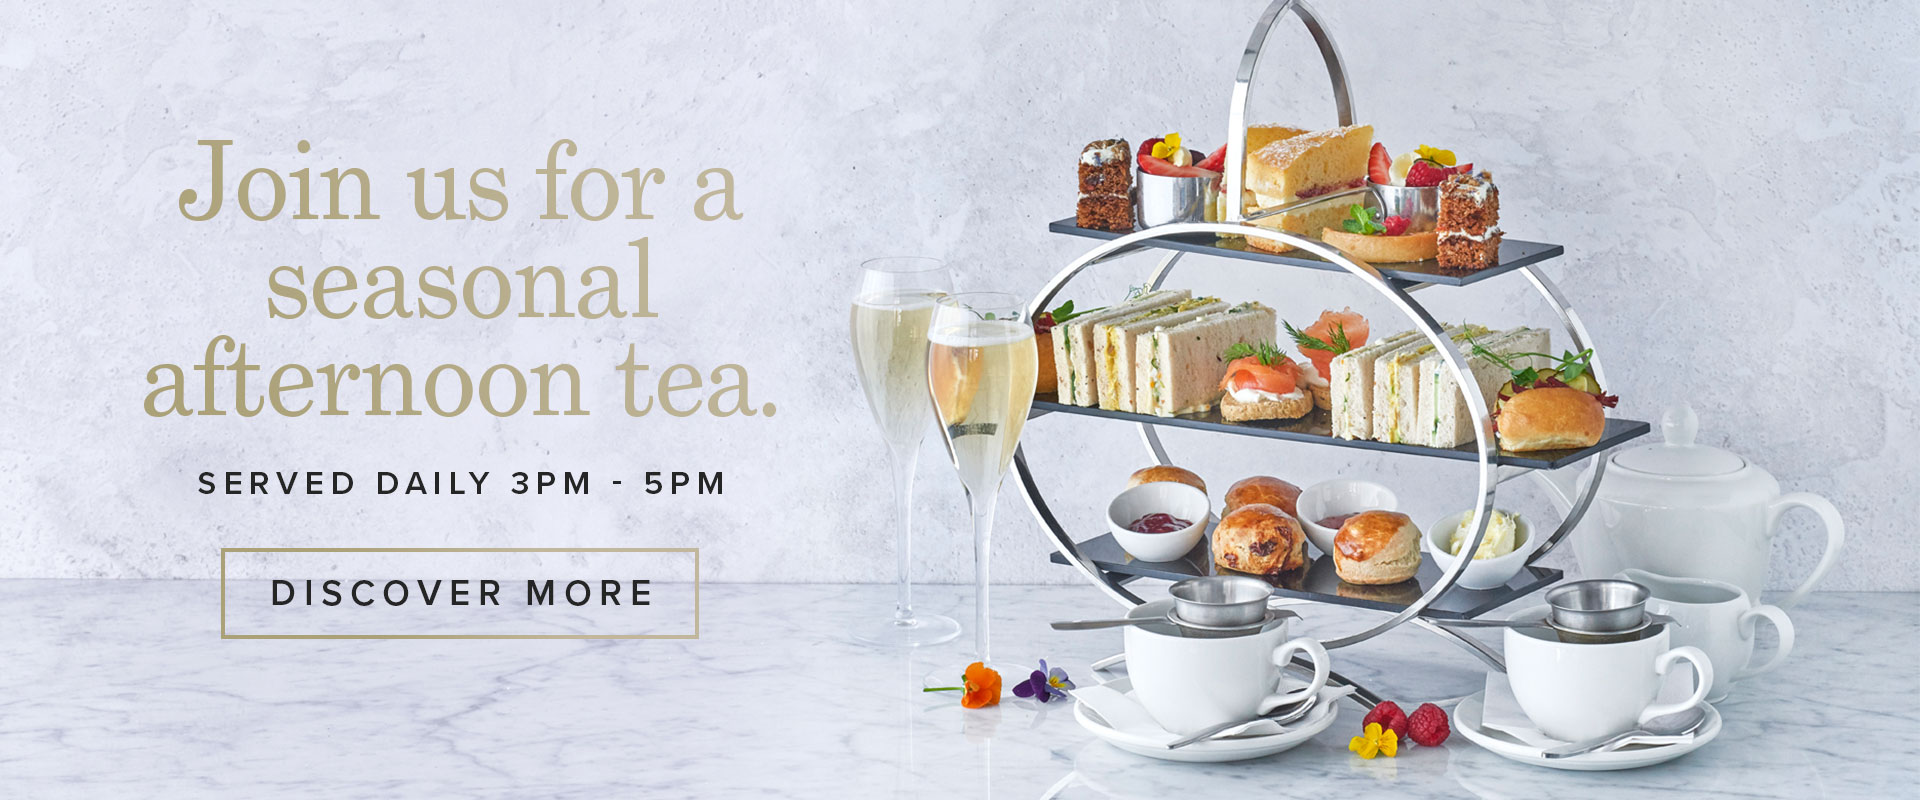 Afternoon Tea at Browns Bluewater